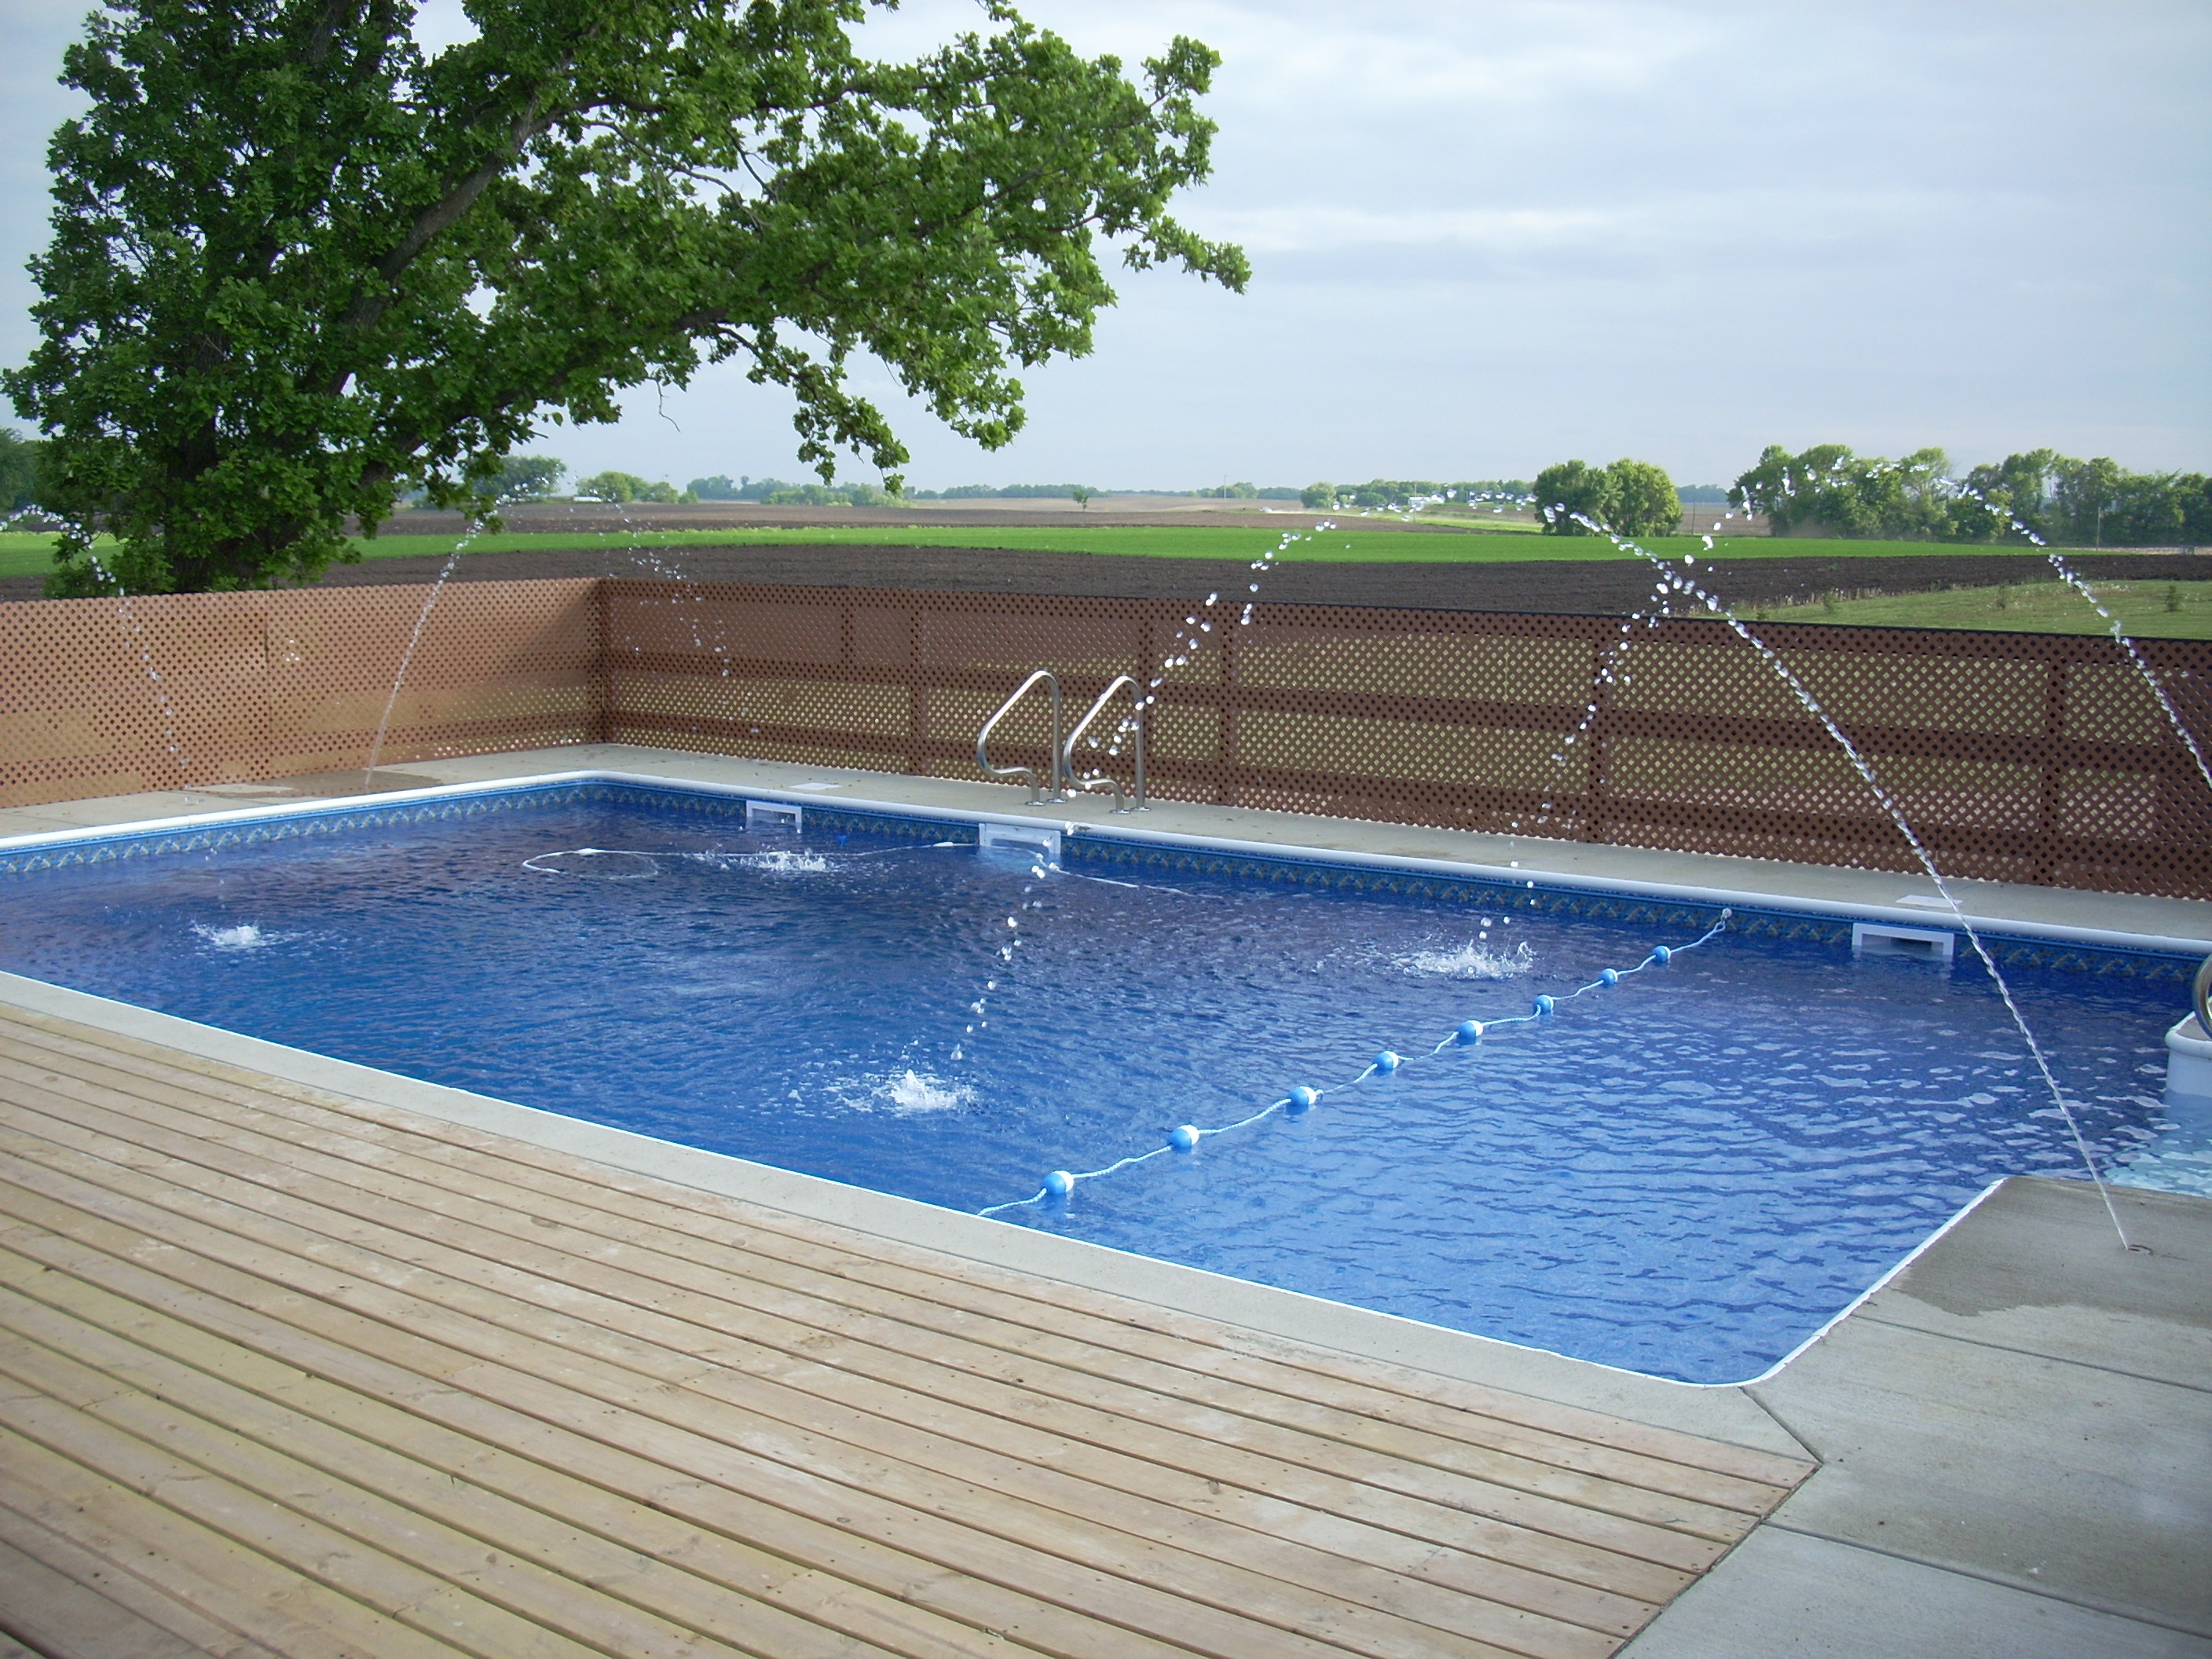 Underground Swimming Pool Designs inground swimming pool installed by tc pools Inground Swimming Pool Installed By Tc Pools